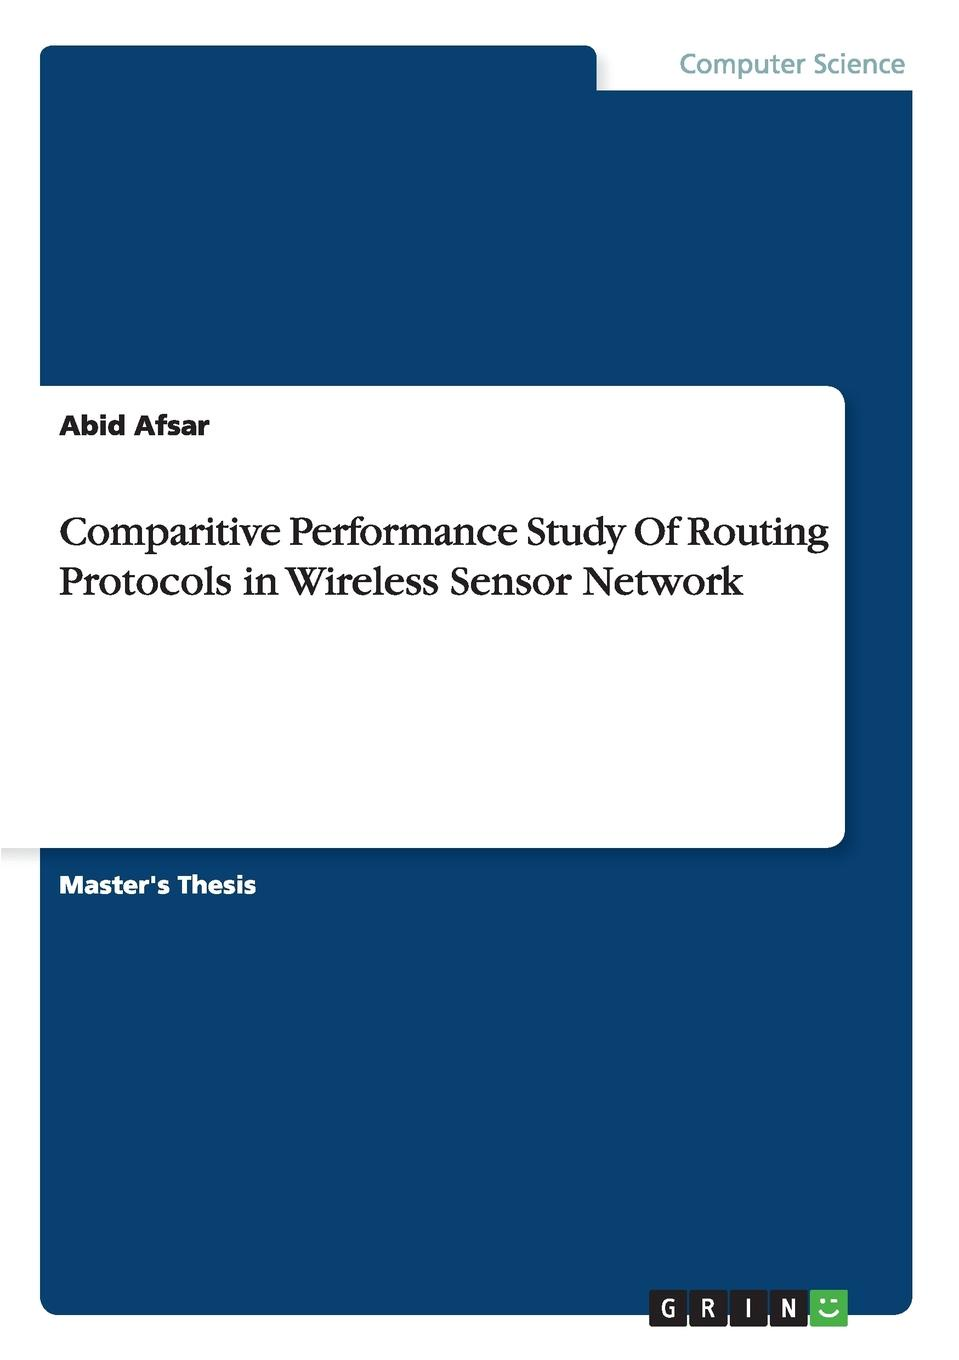 Abid Afsar Comparitive Performance Study Of Routing Protocols in Wireless Sensor Network wireless voice acousto optic site alarm spot detector pir sensor